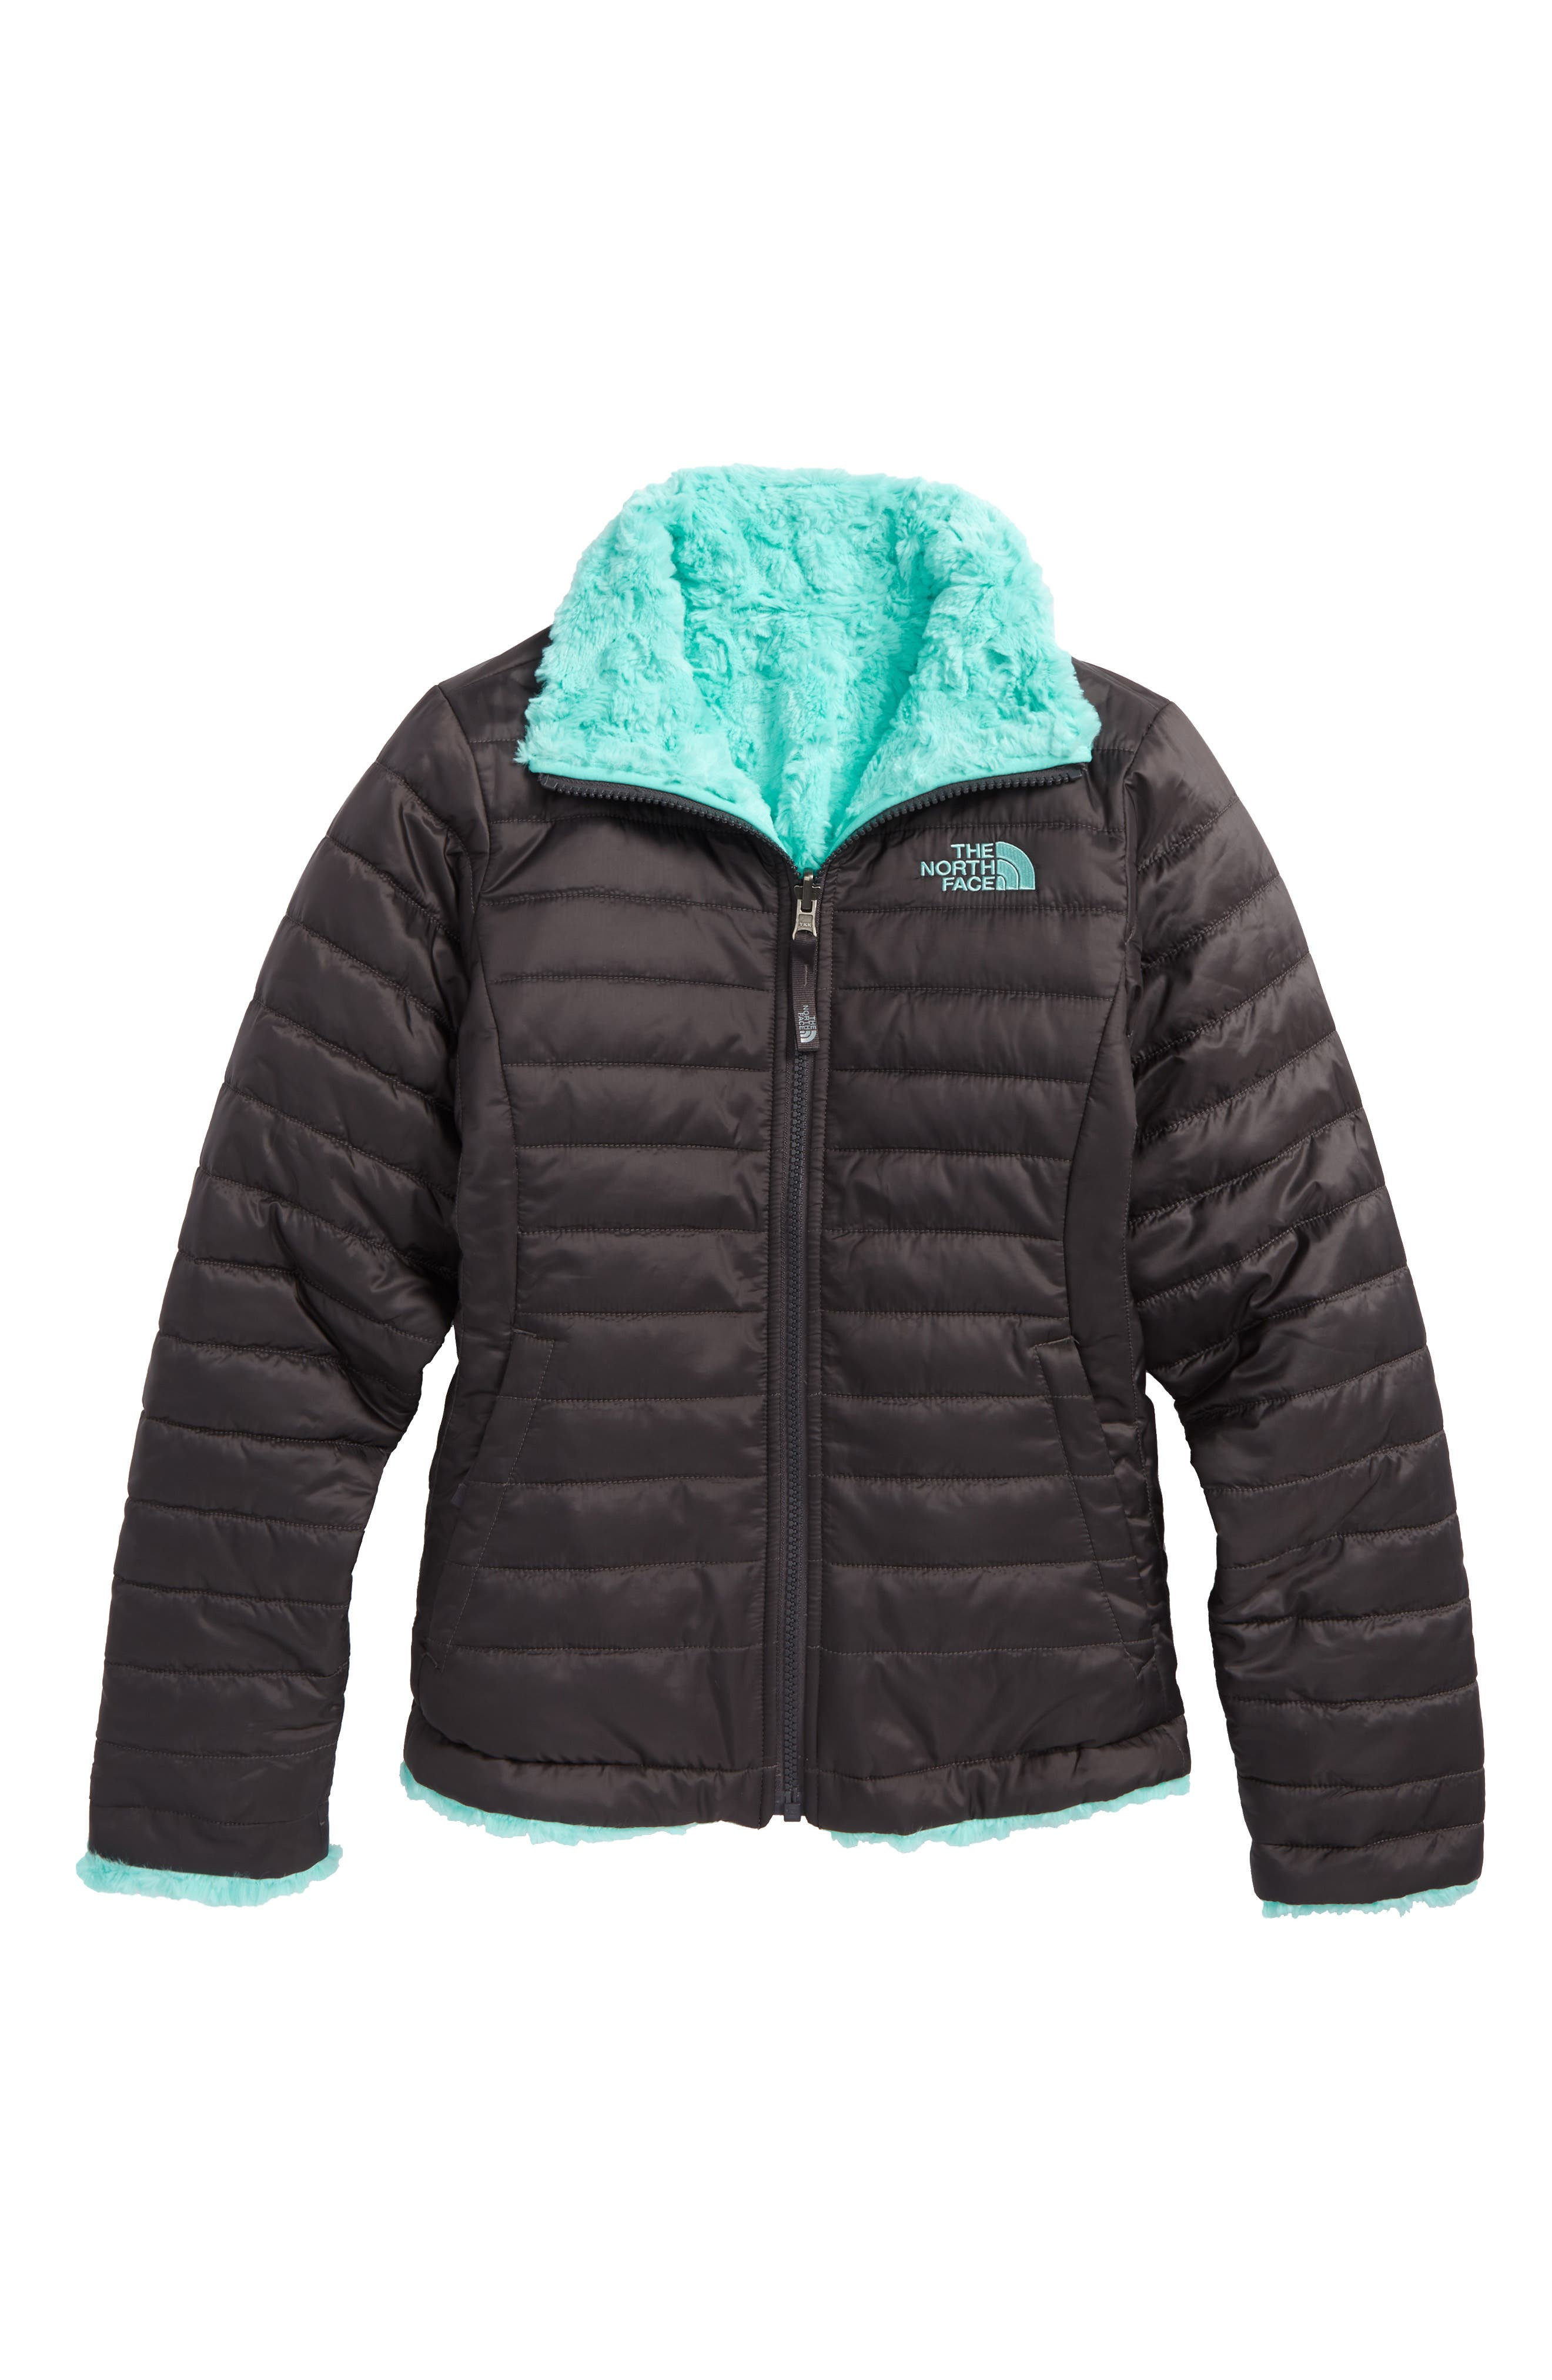 THE NORTH FACE Mossbud Swirl Reversible Water Repellent Jacket, Main, color, 021